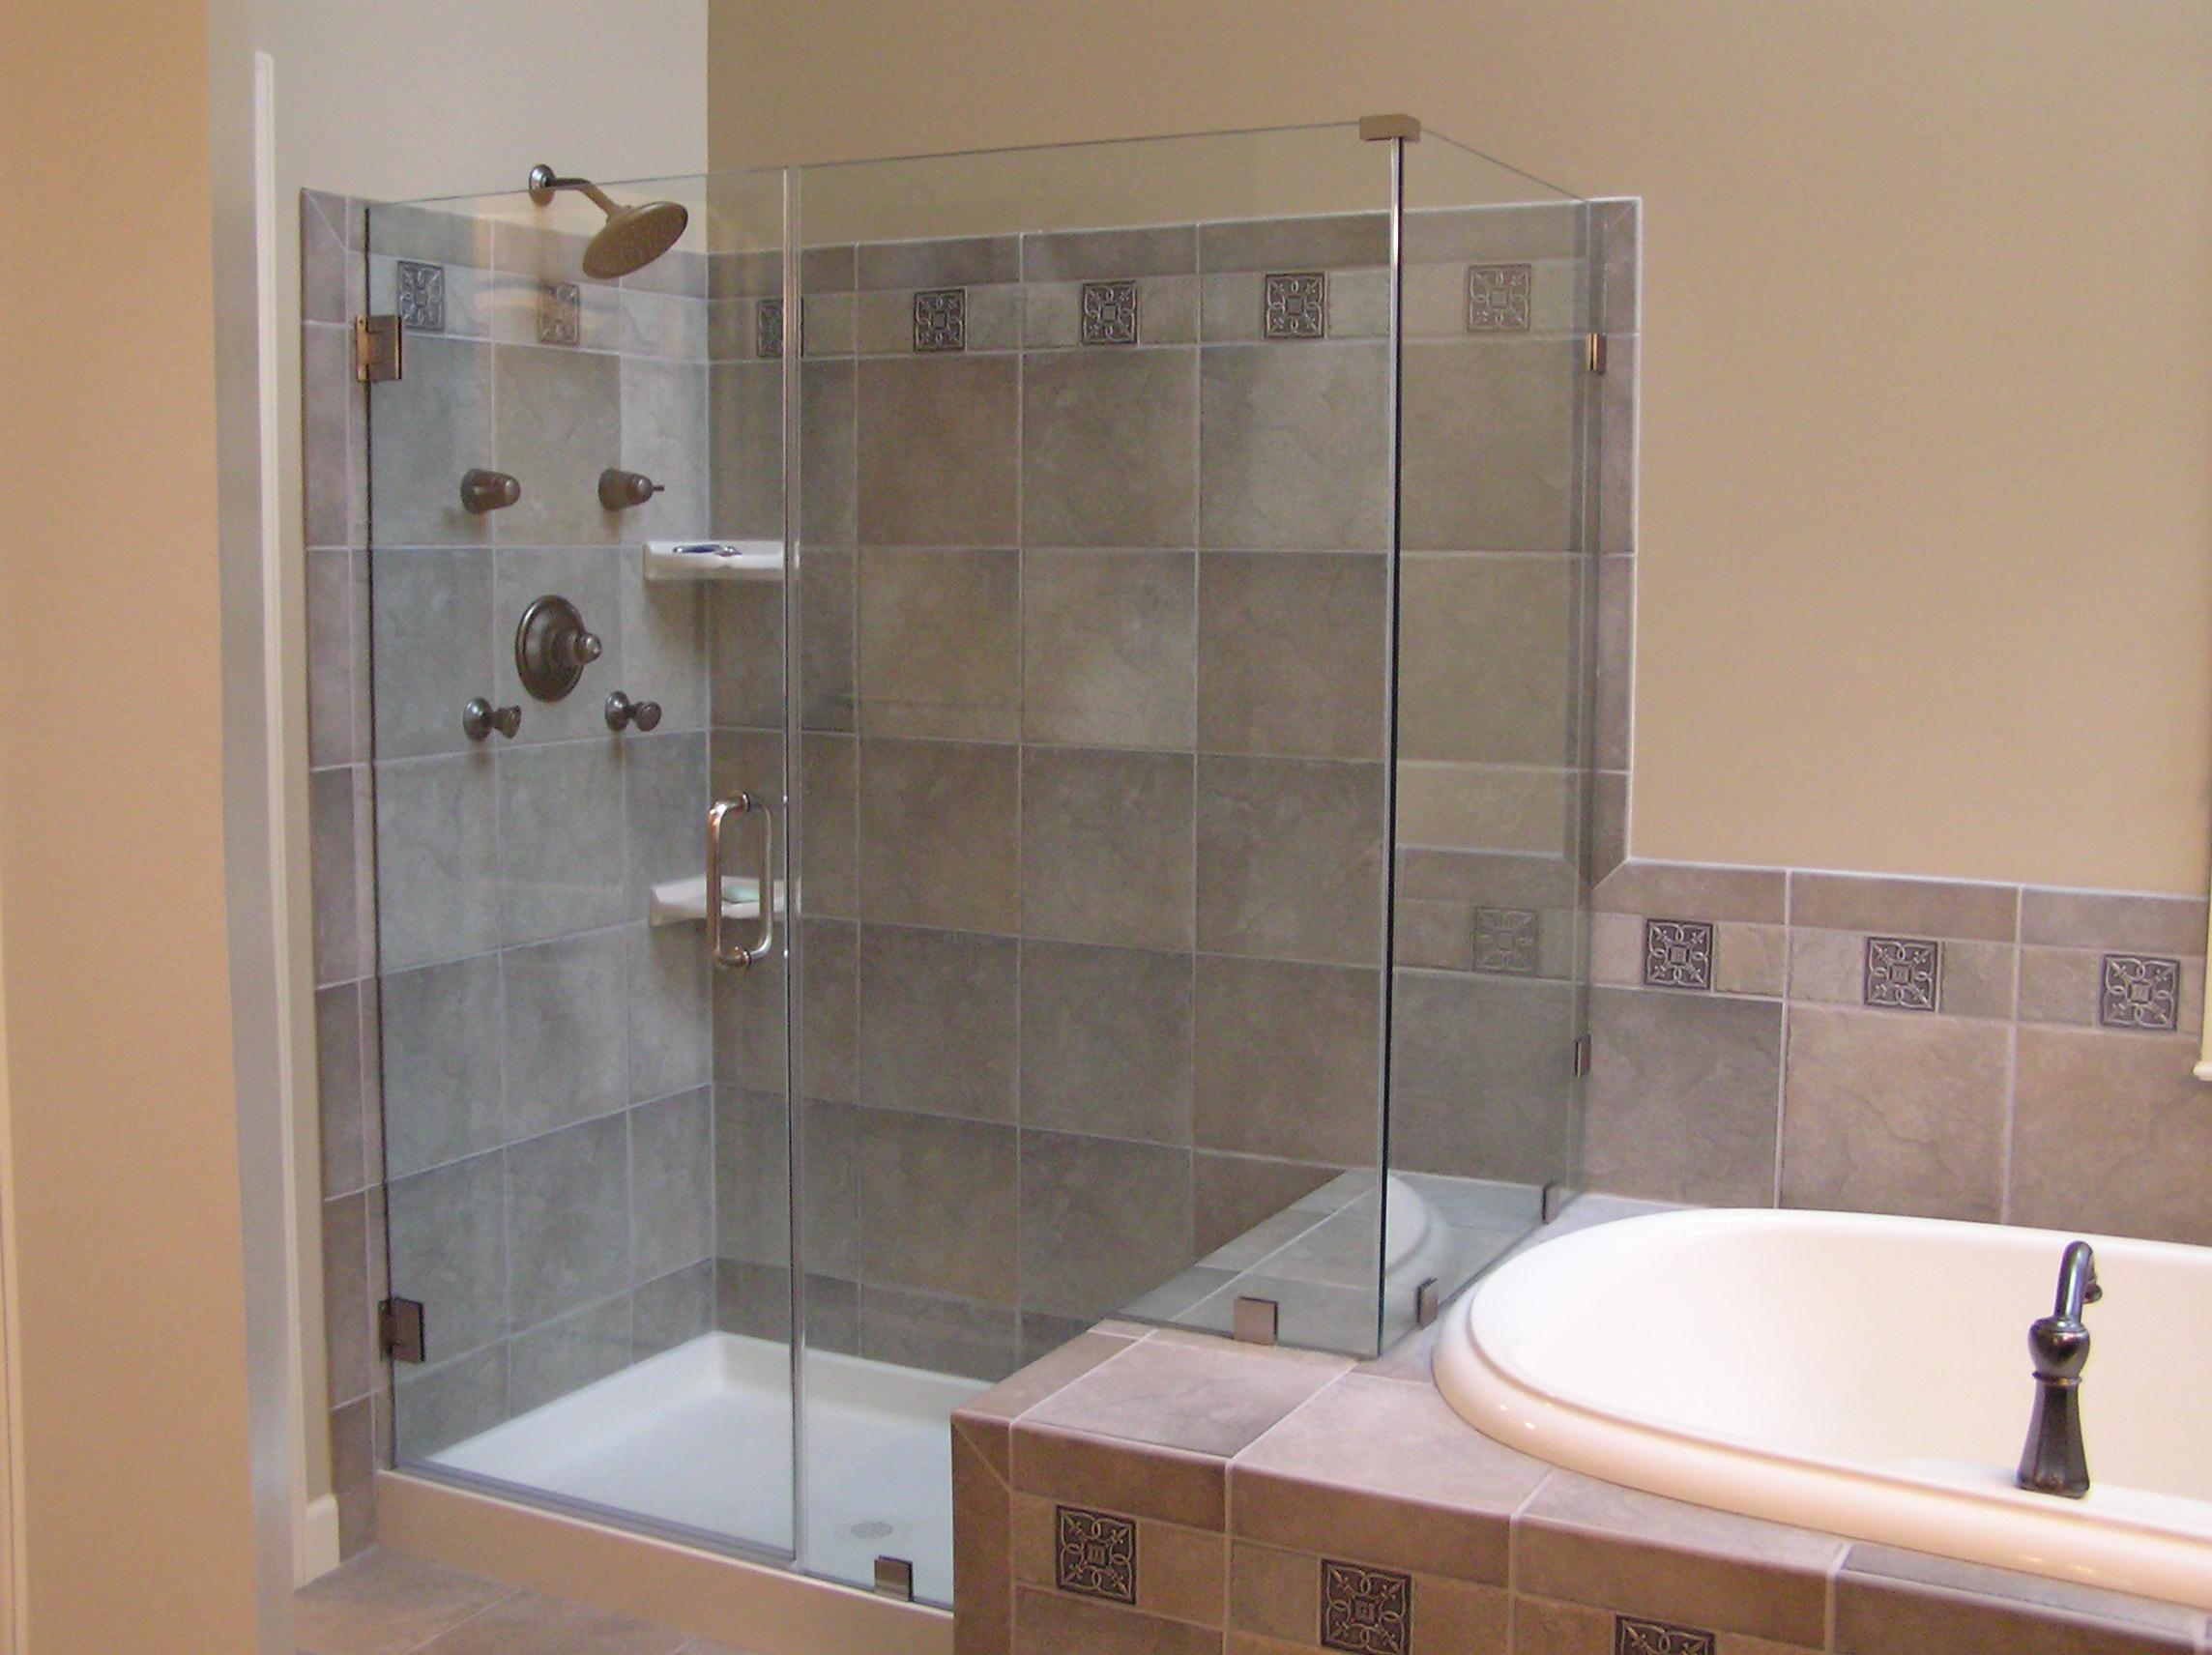 Bathroom Remodel Delaware Home Improvement Contractors - Examples of bathroom renovations